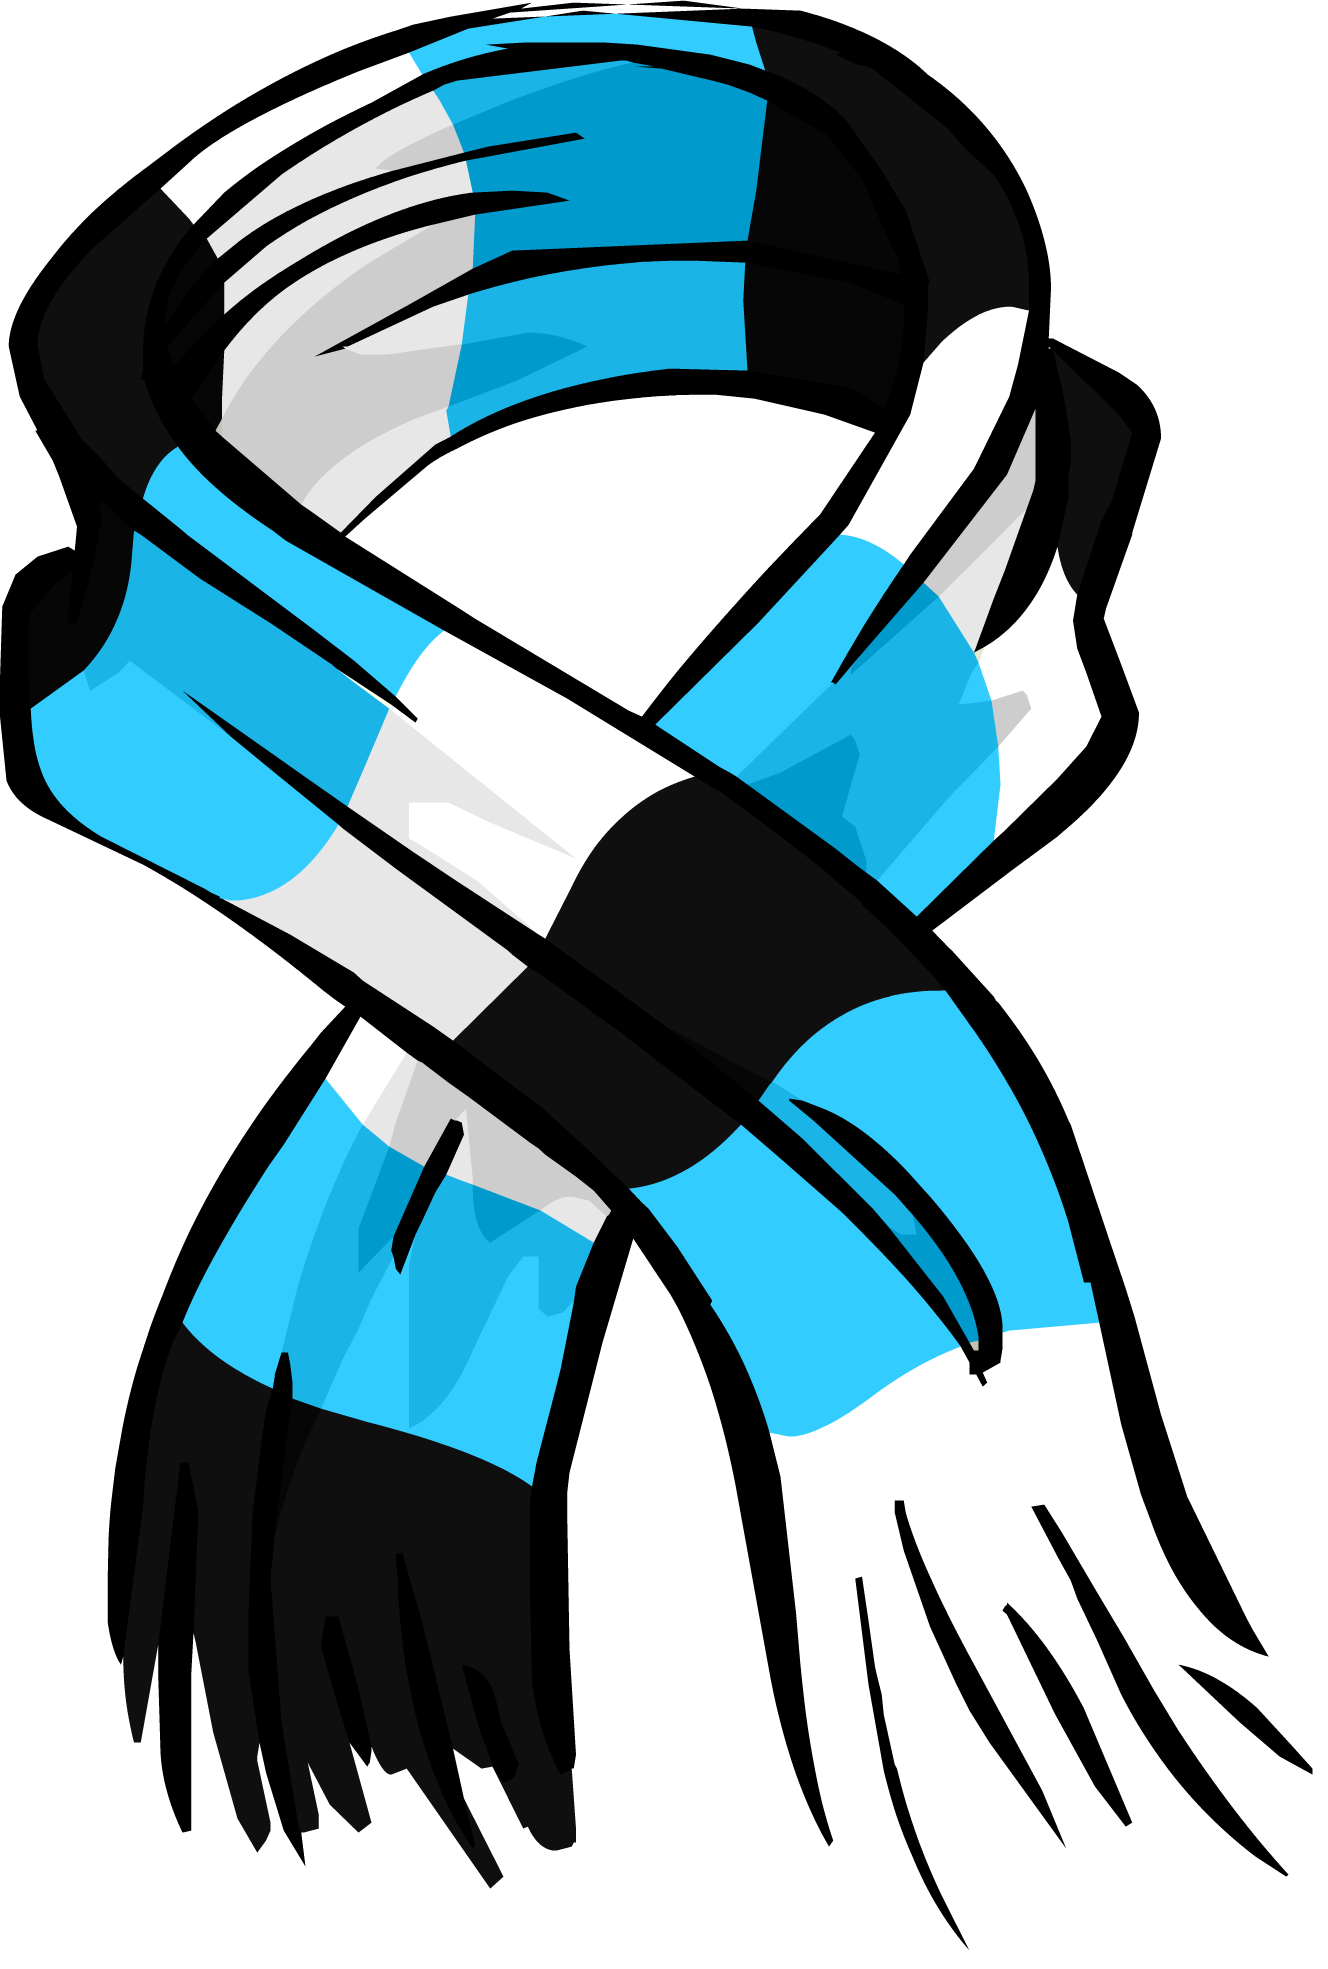 Scarf clipart png. Blue striped image purepng